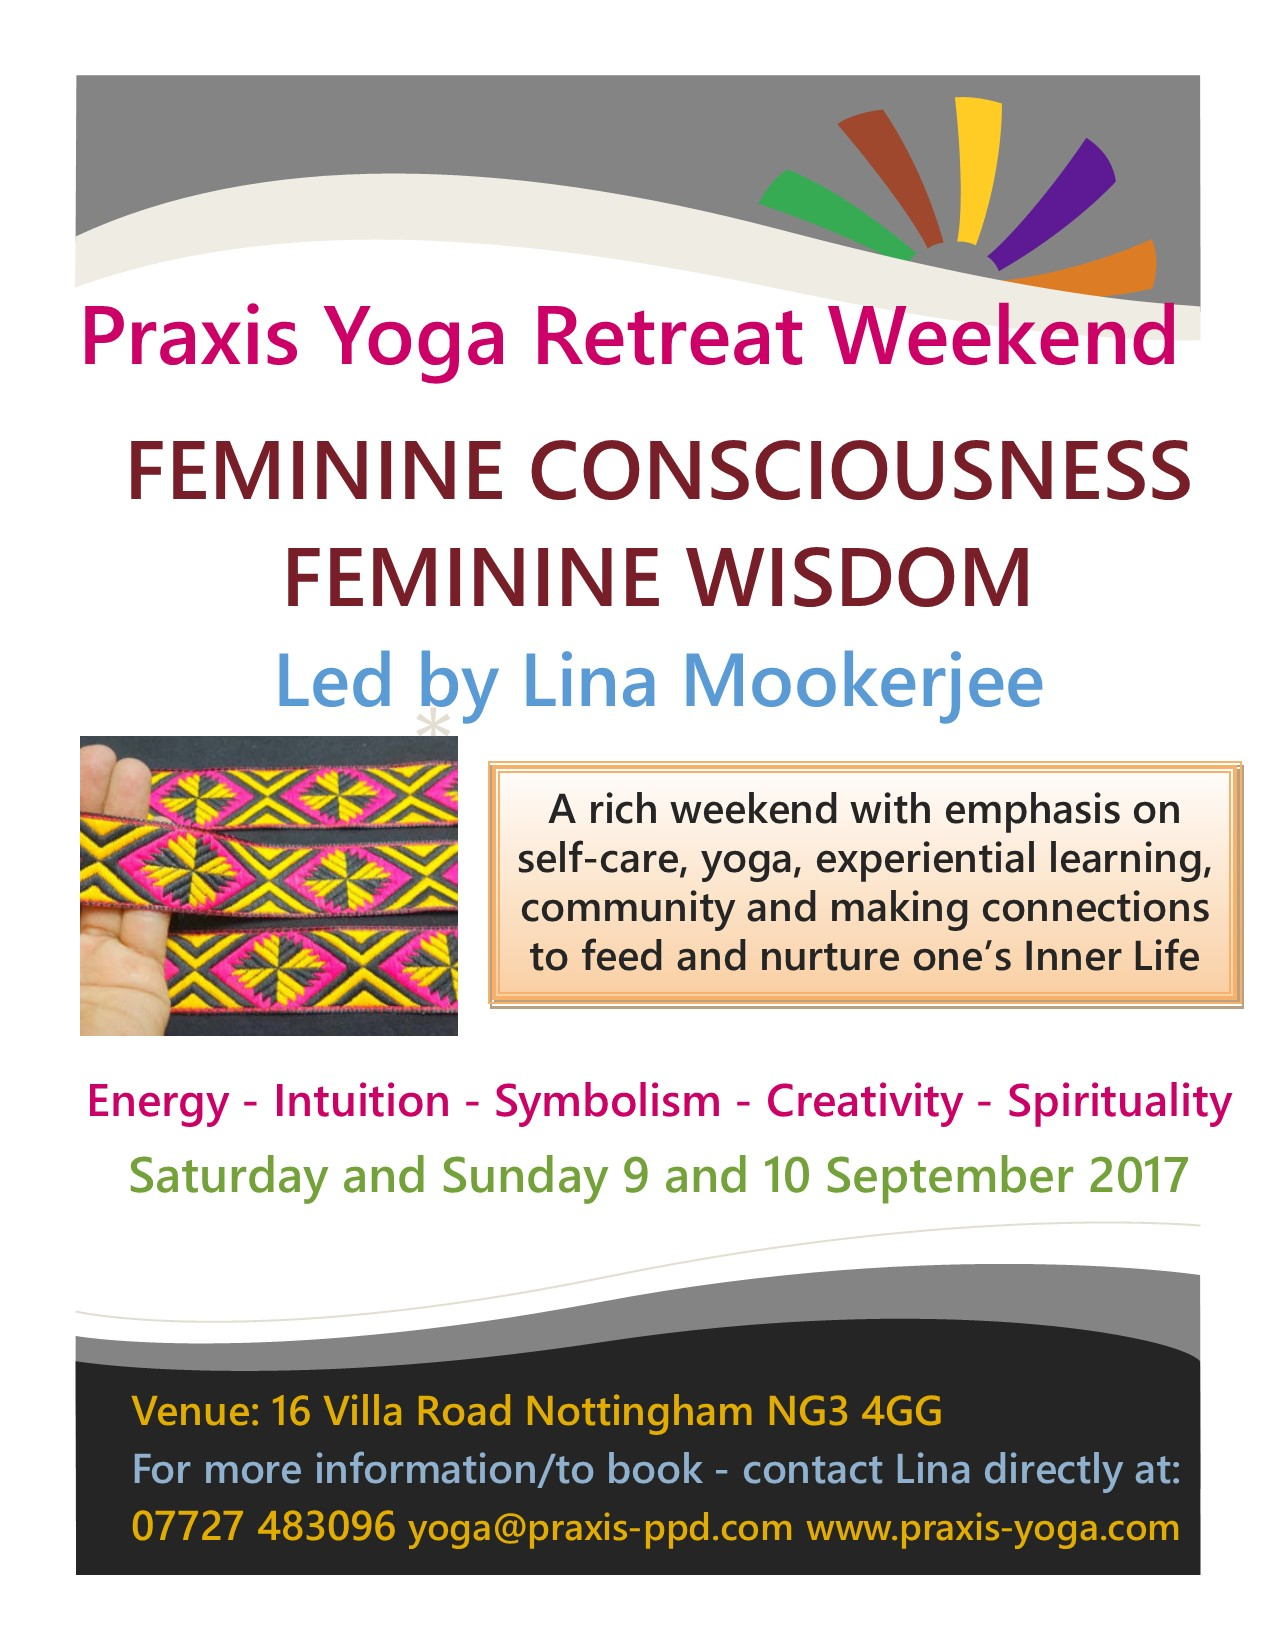 Praxis Yoga Summer 2017 Retreat Weekend Poster